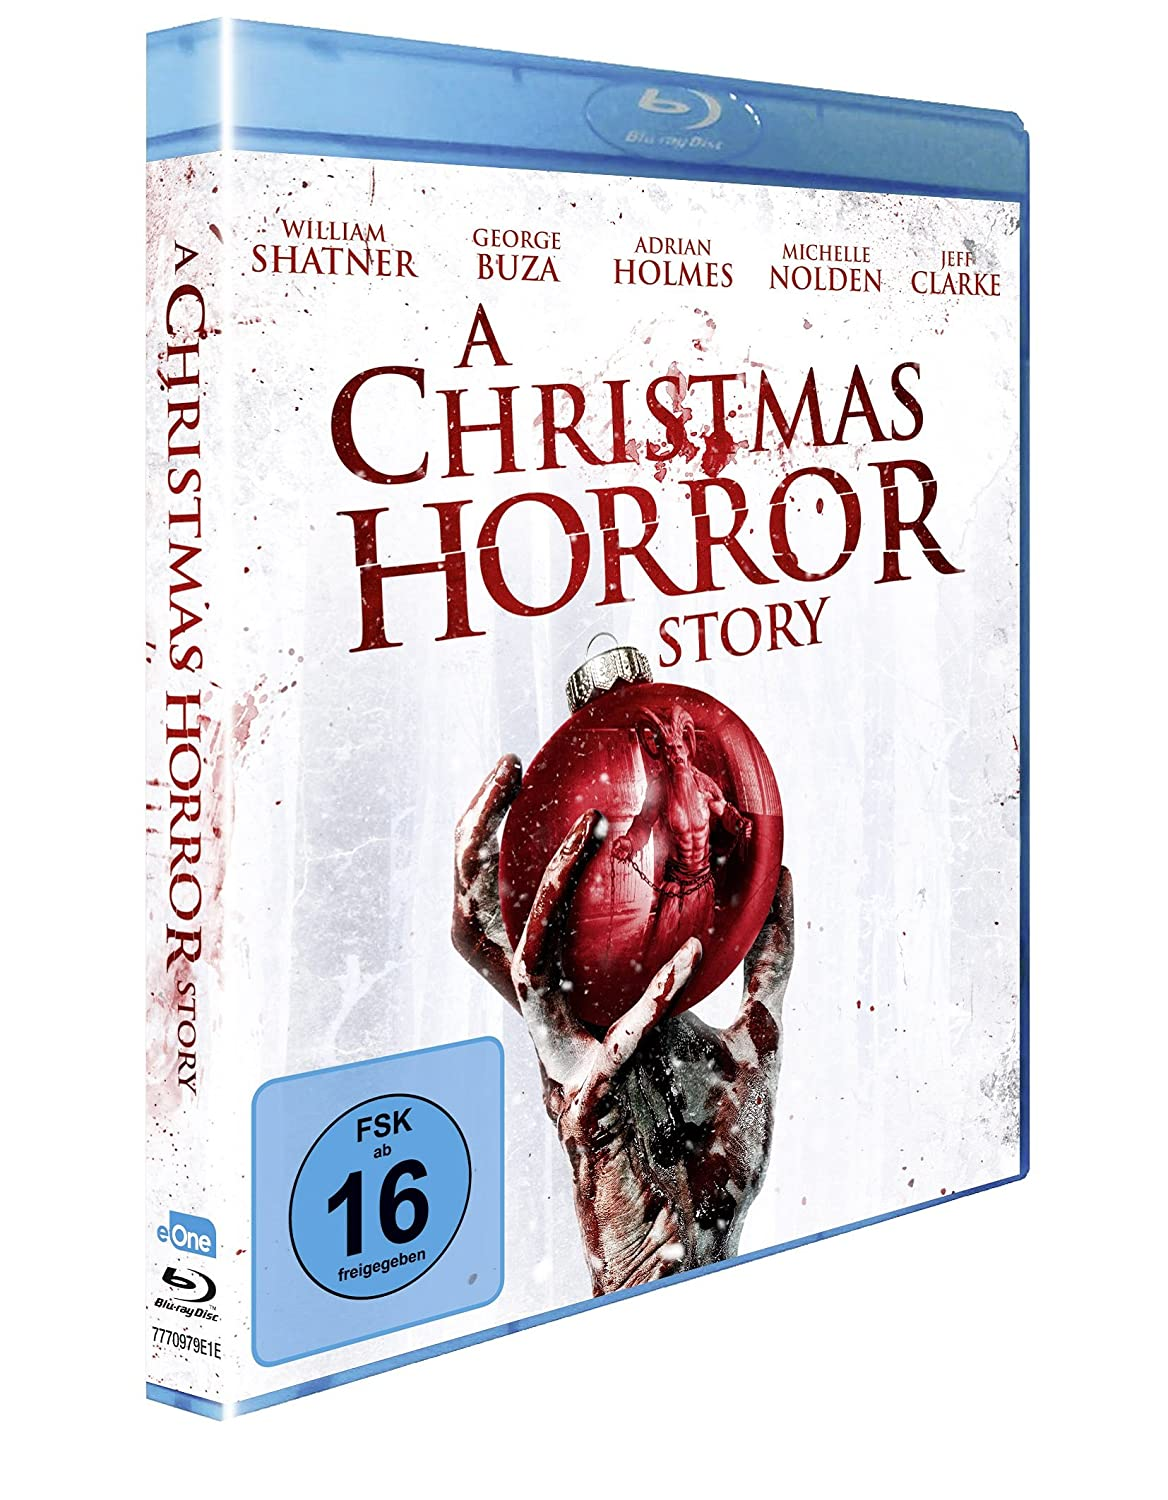 A Christmas Horror Story [Blu-ray]: Amazon.de: William Shatner ...